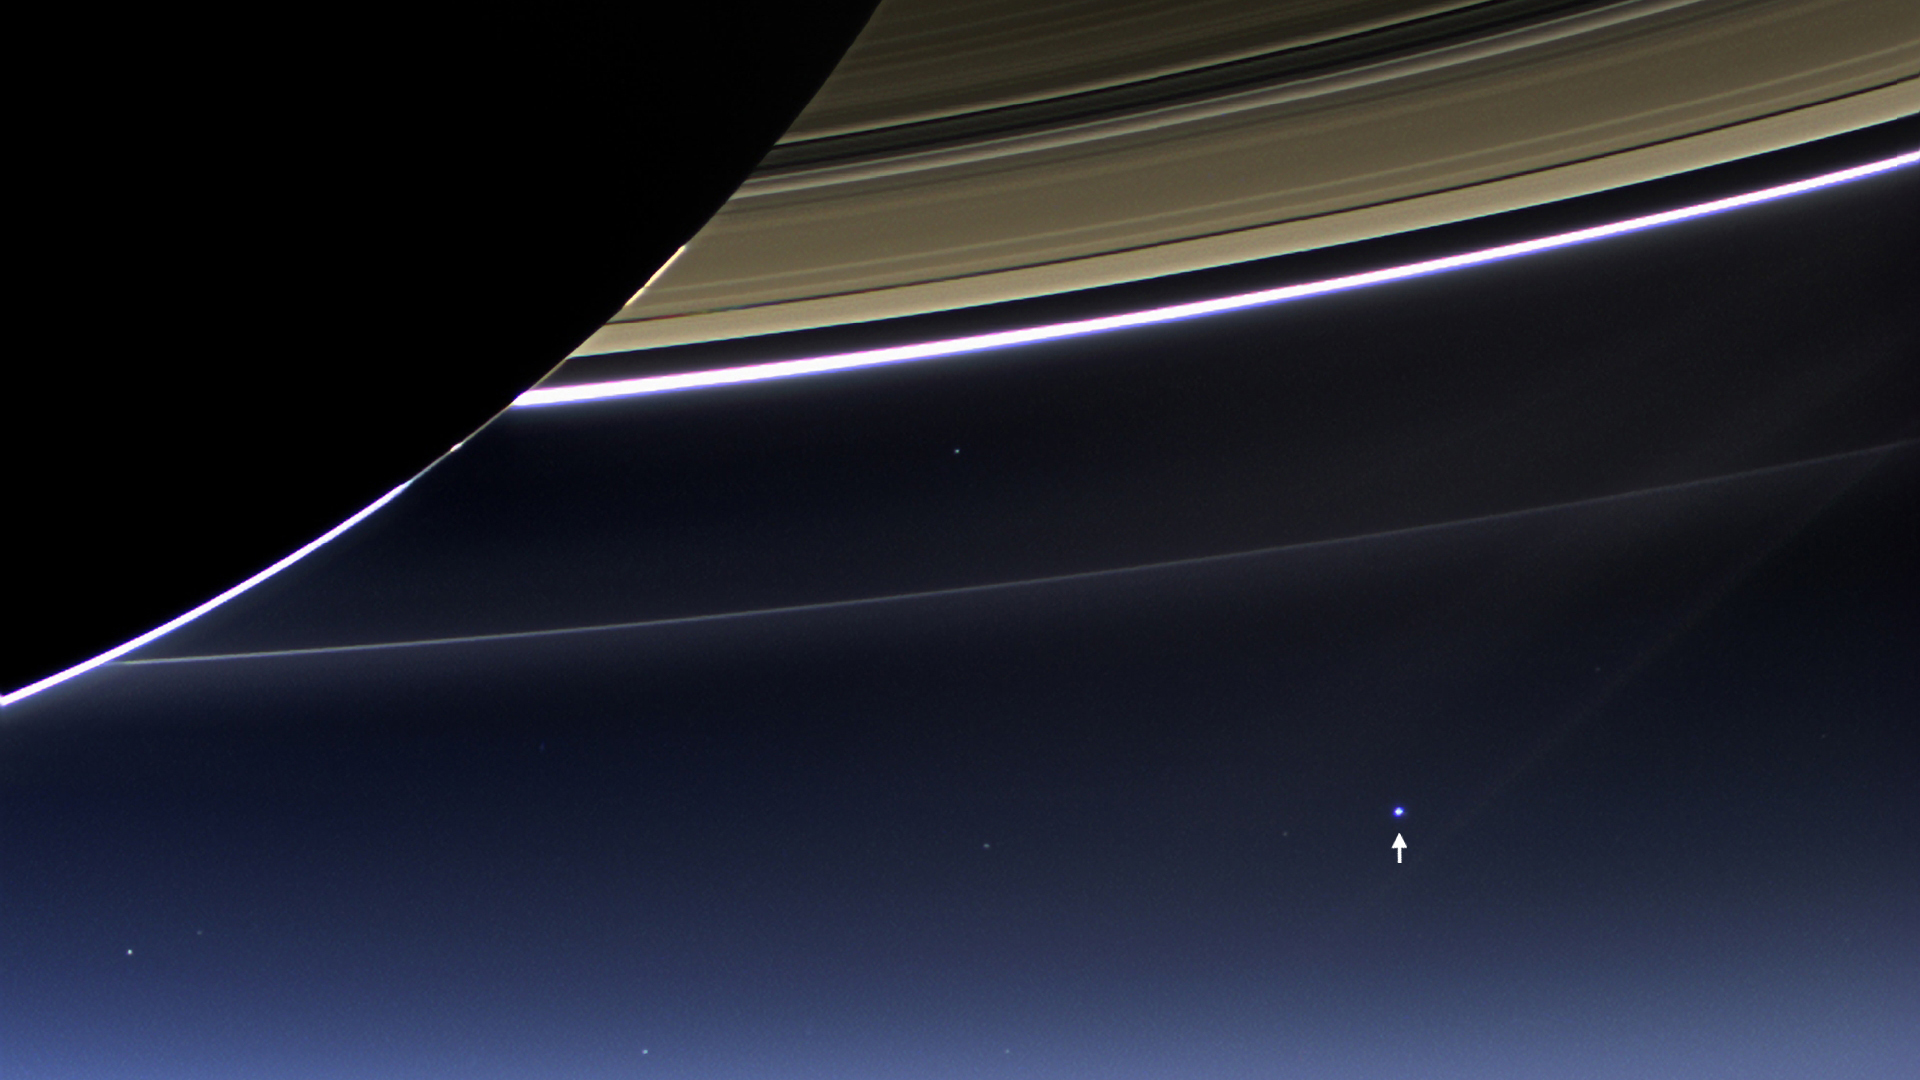 http://www.nasa.gov/sites/default/files/20130722_annotated_earth-moon_from_saturn_1920x1080_1.jpg